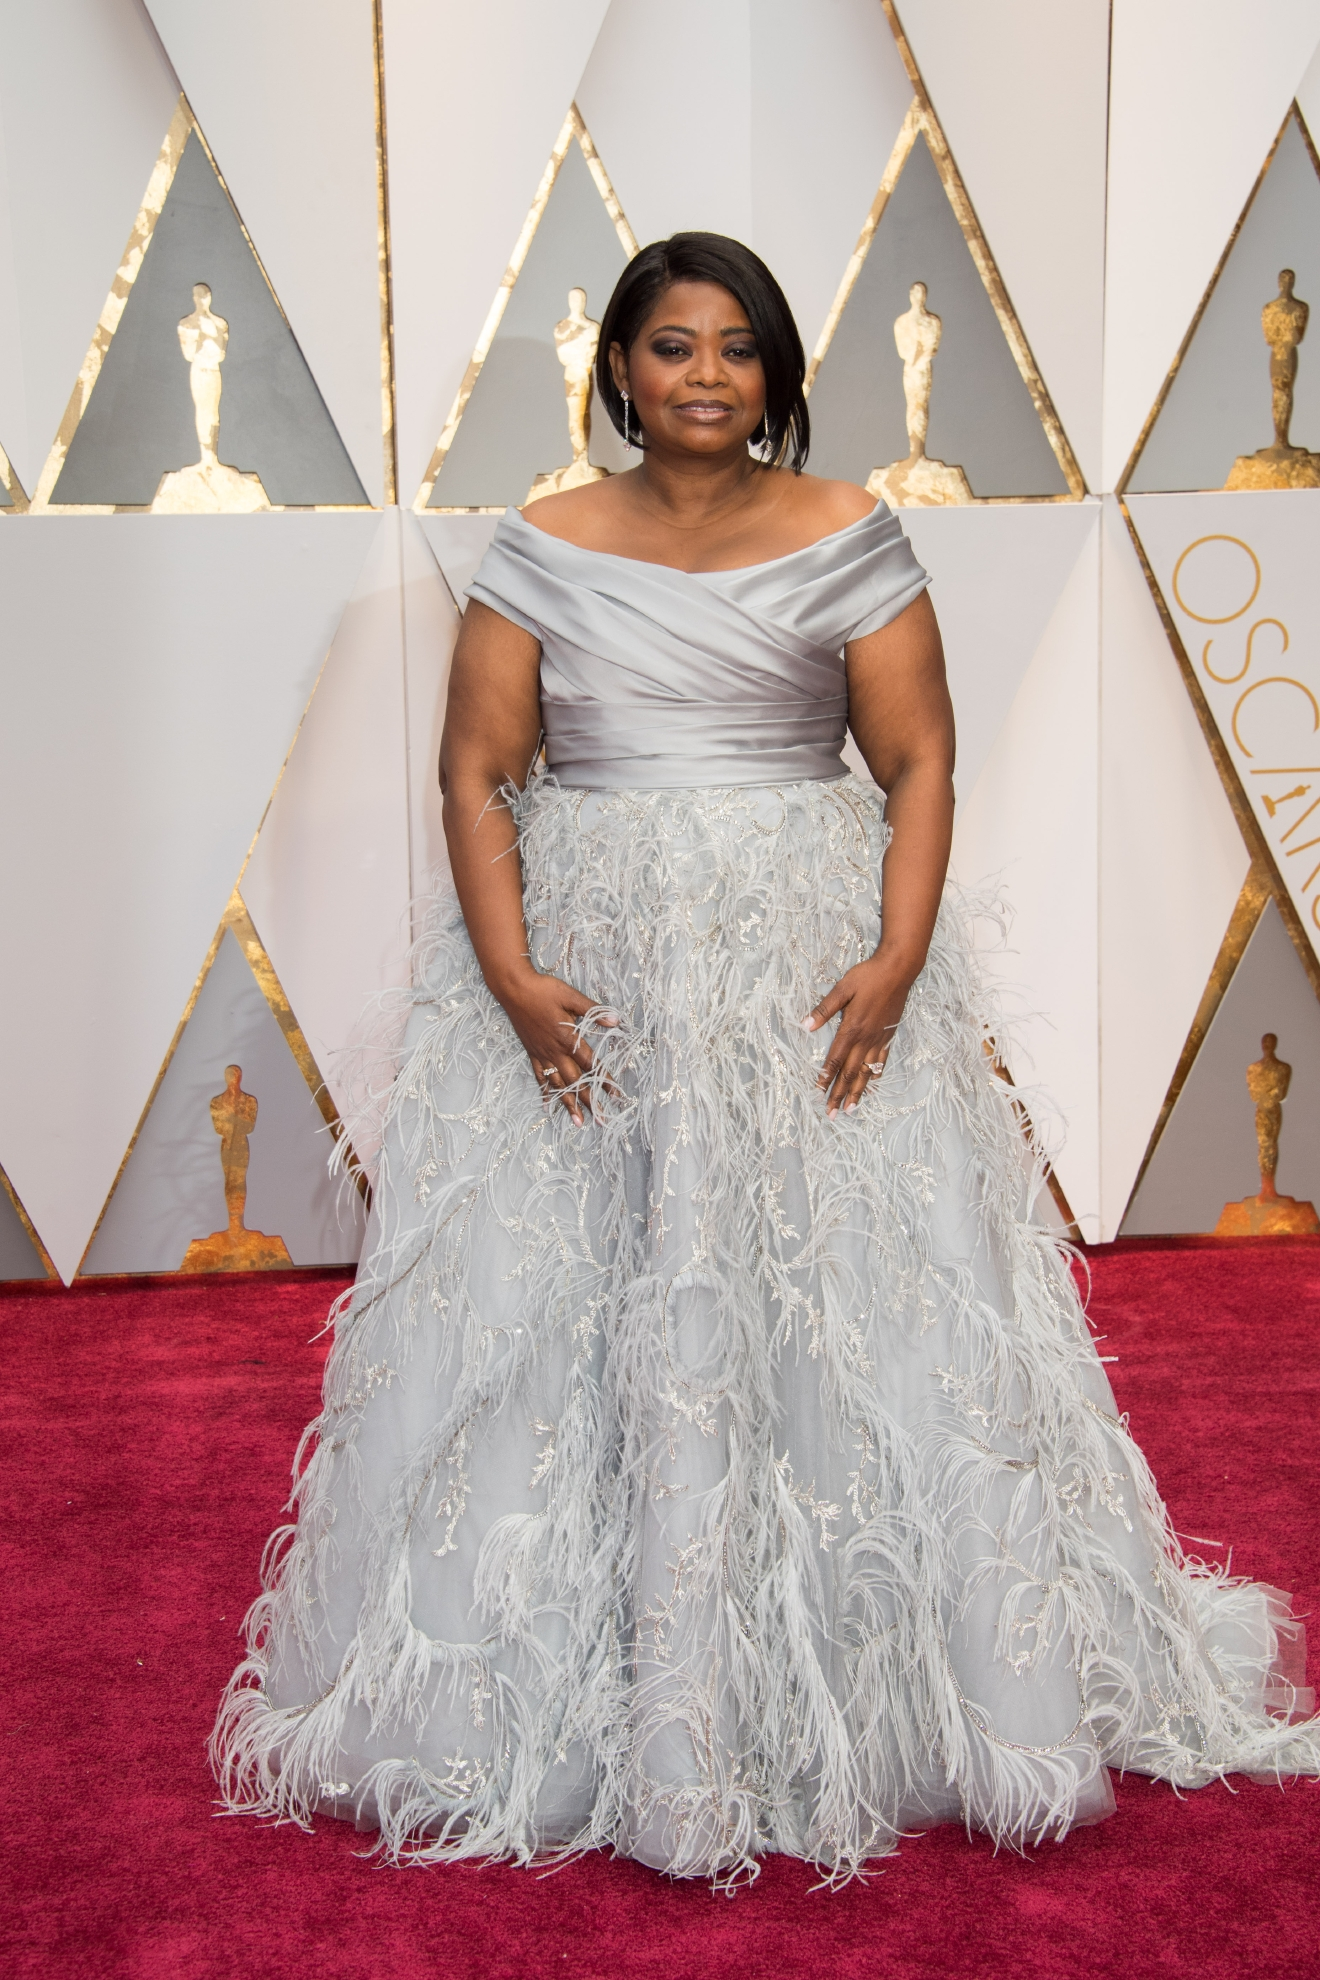 Octavia Spencer, Oscar® nominee, arrives on the red carpet of The 89th Oscars® at the Dolby® Theatre in Hollywood, CA on Sunday, February 26, 2017. (©A.M.P.A.S.)